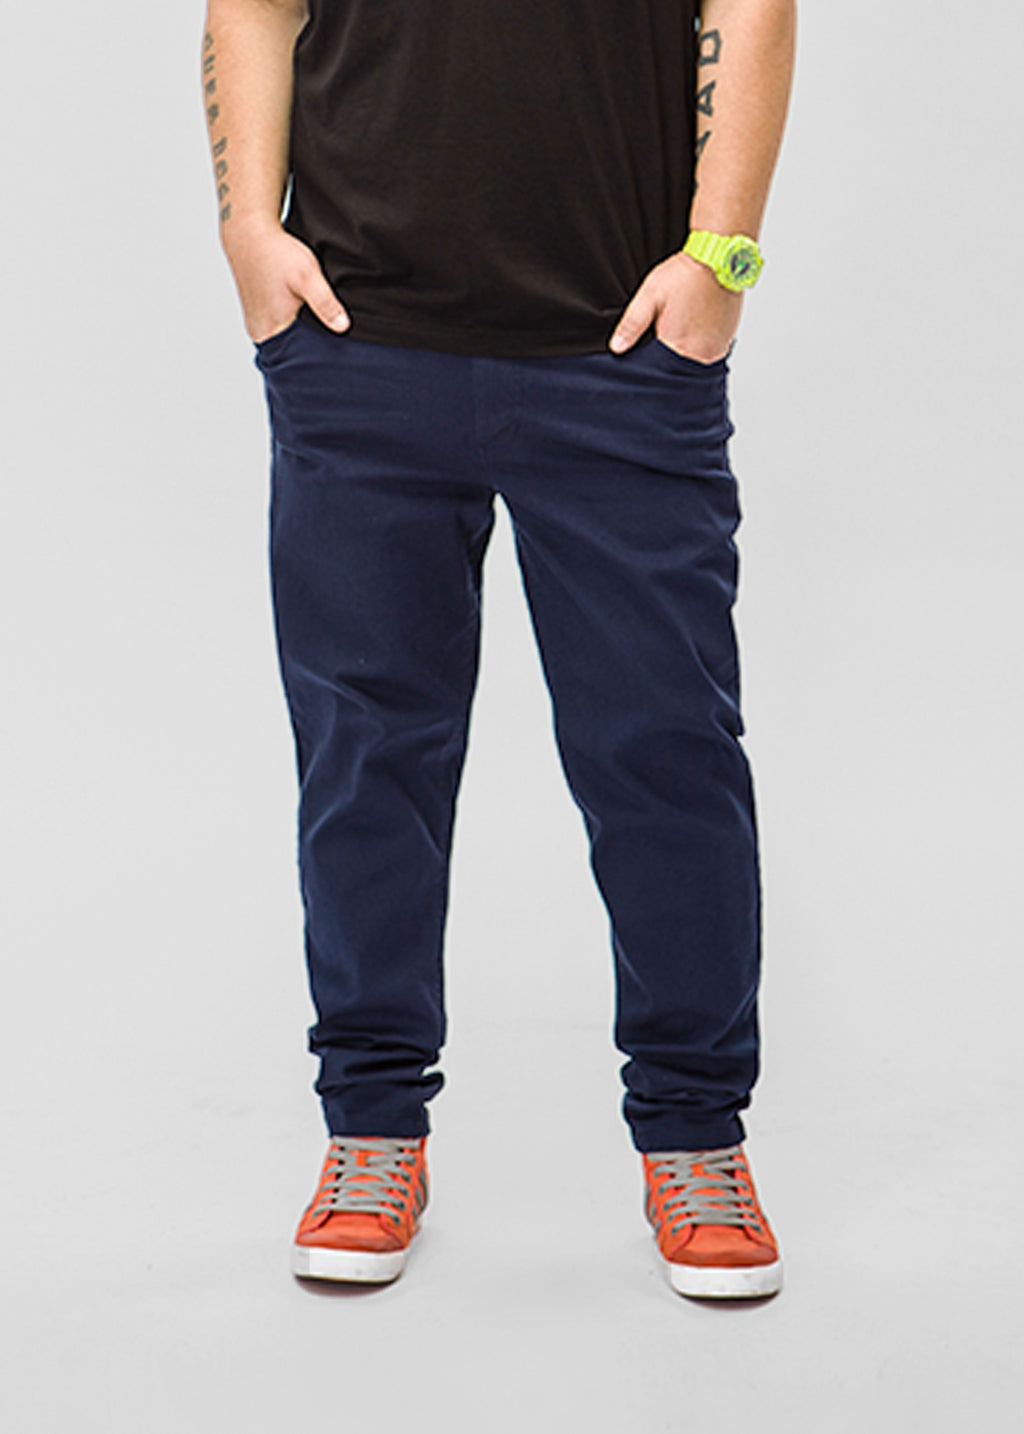 Fashion Casual Chinos Pants  - 62K0013